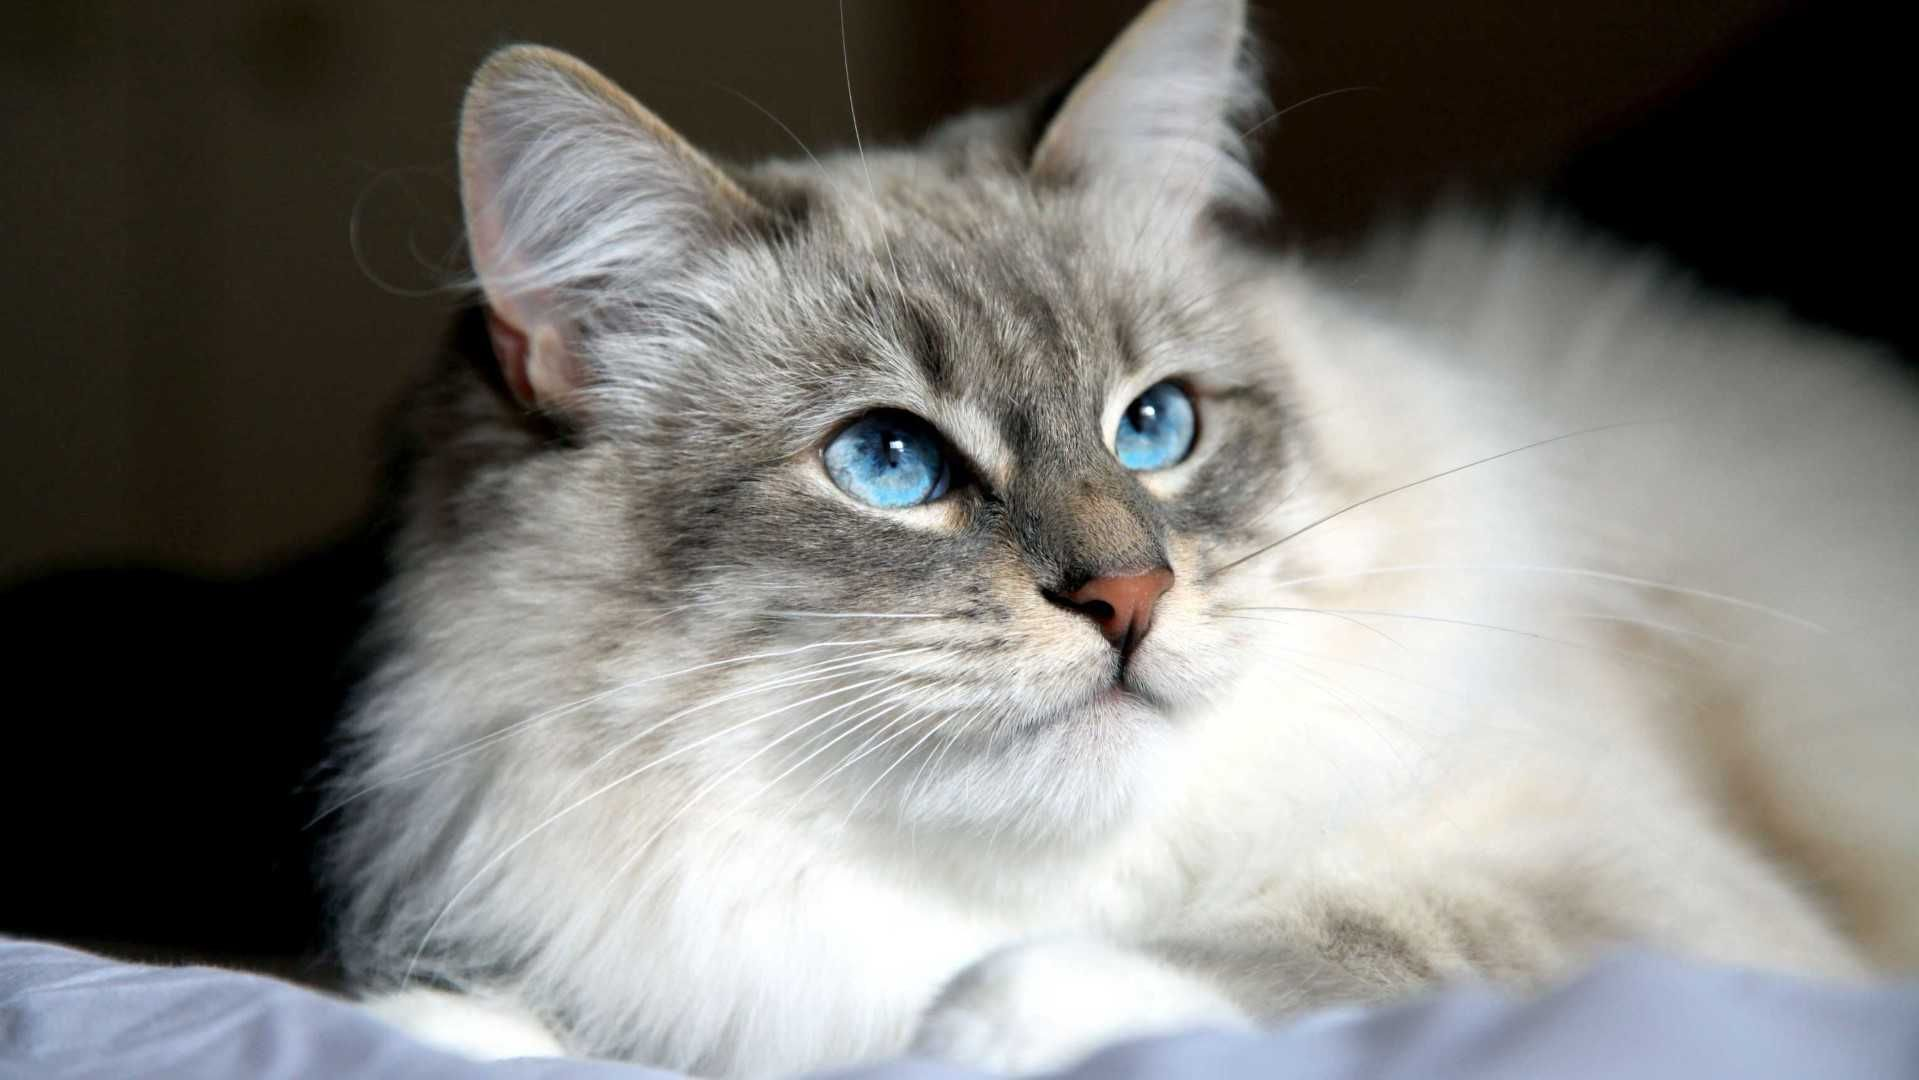 The Siberian Cat catbreeds catfacts catimages